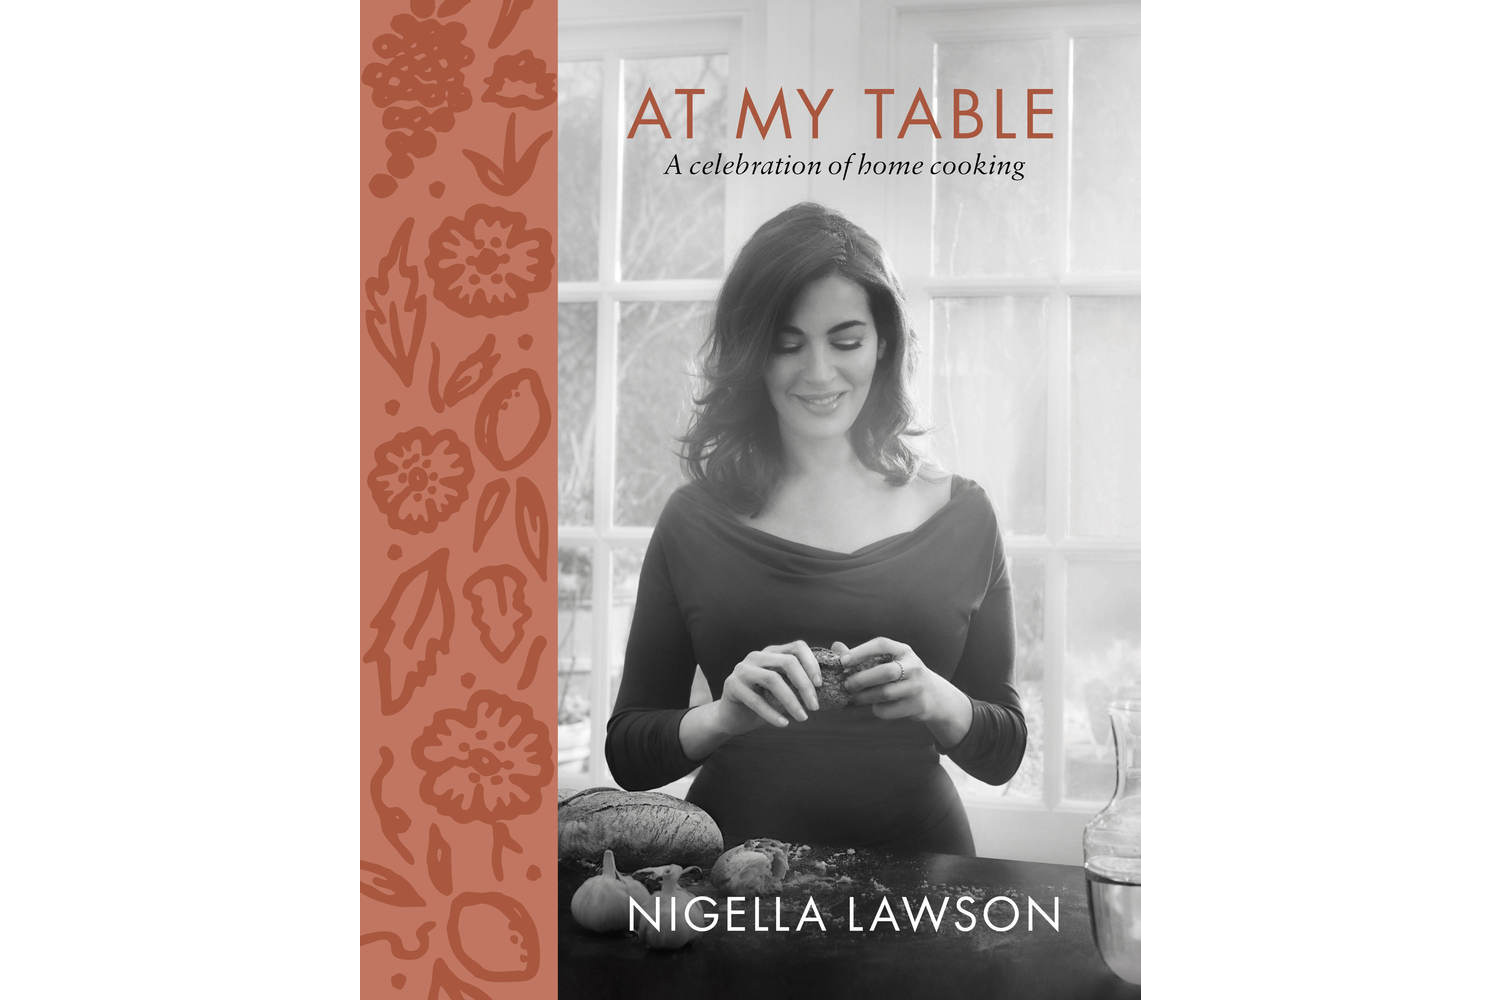 At My Table, by Nigella Lawson